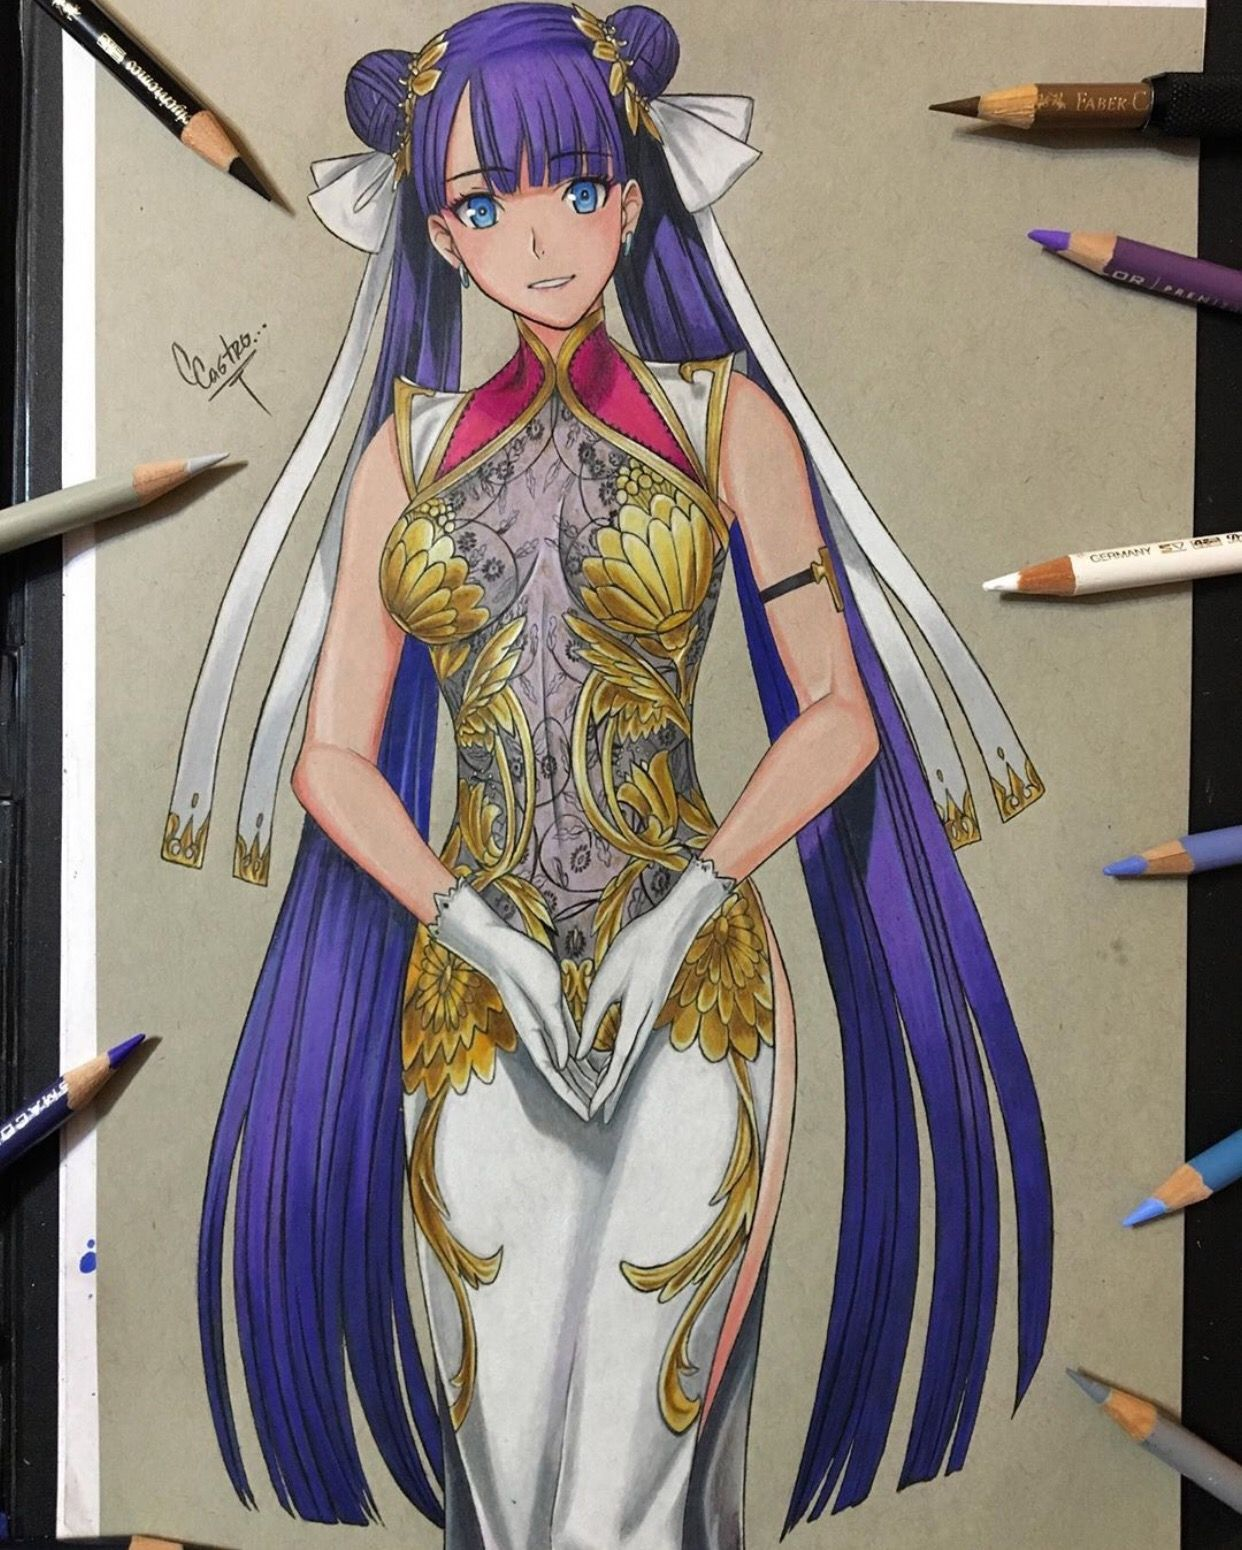 Saintmartha By Sketchcris89 Visit Our Website For More Anime And Animeart Fategrandorder Don T Forg Anime Artwork Anime Drawings Anime Art